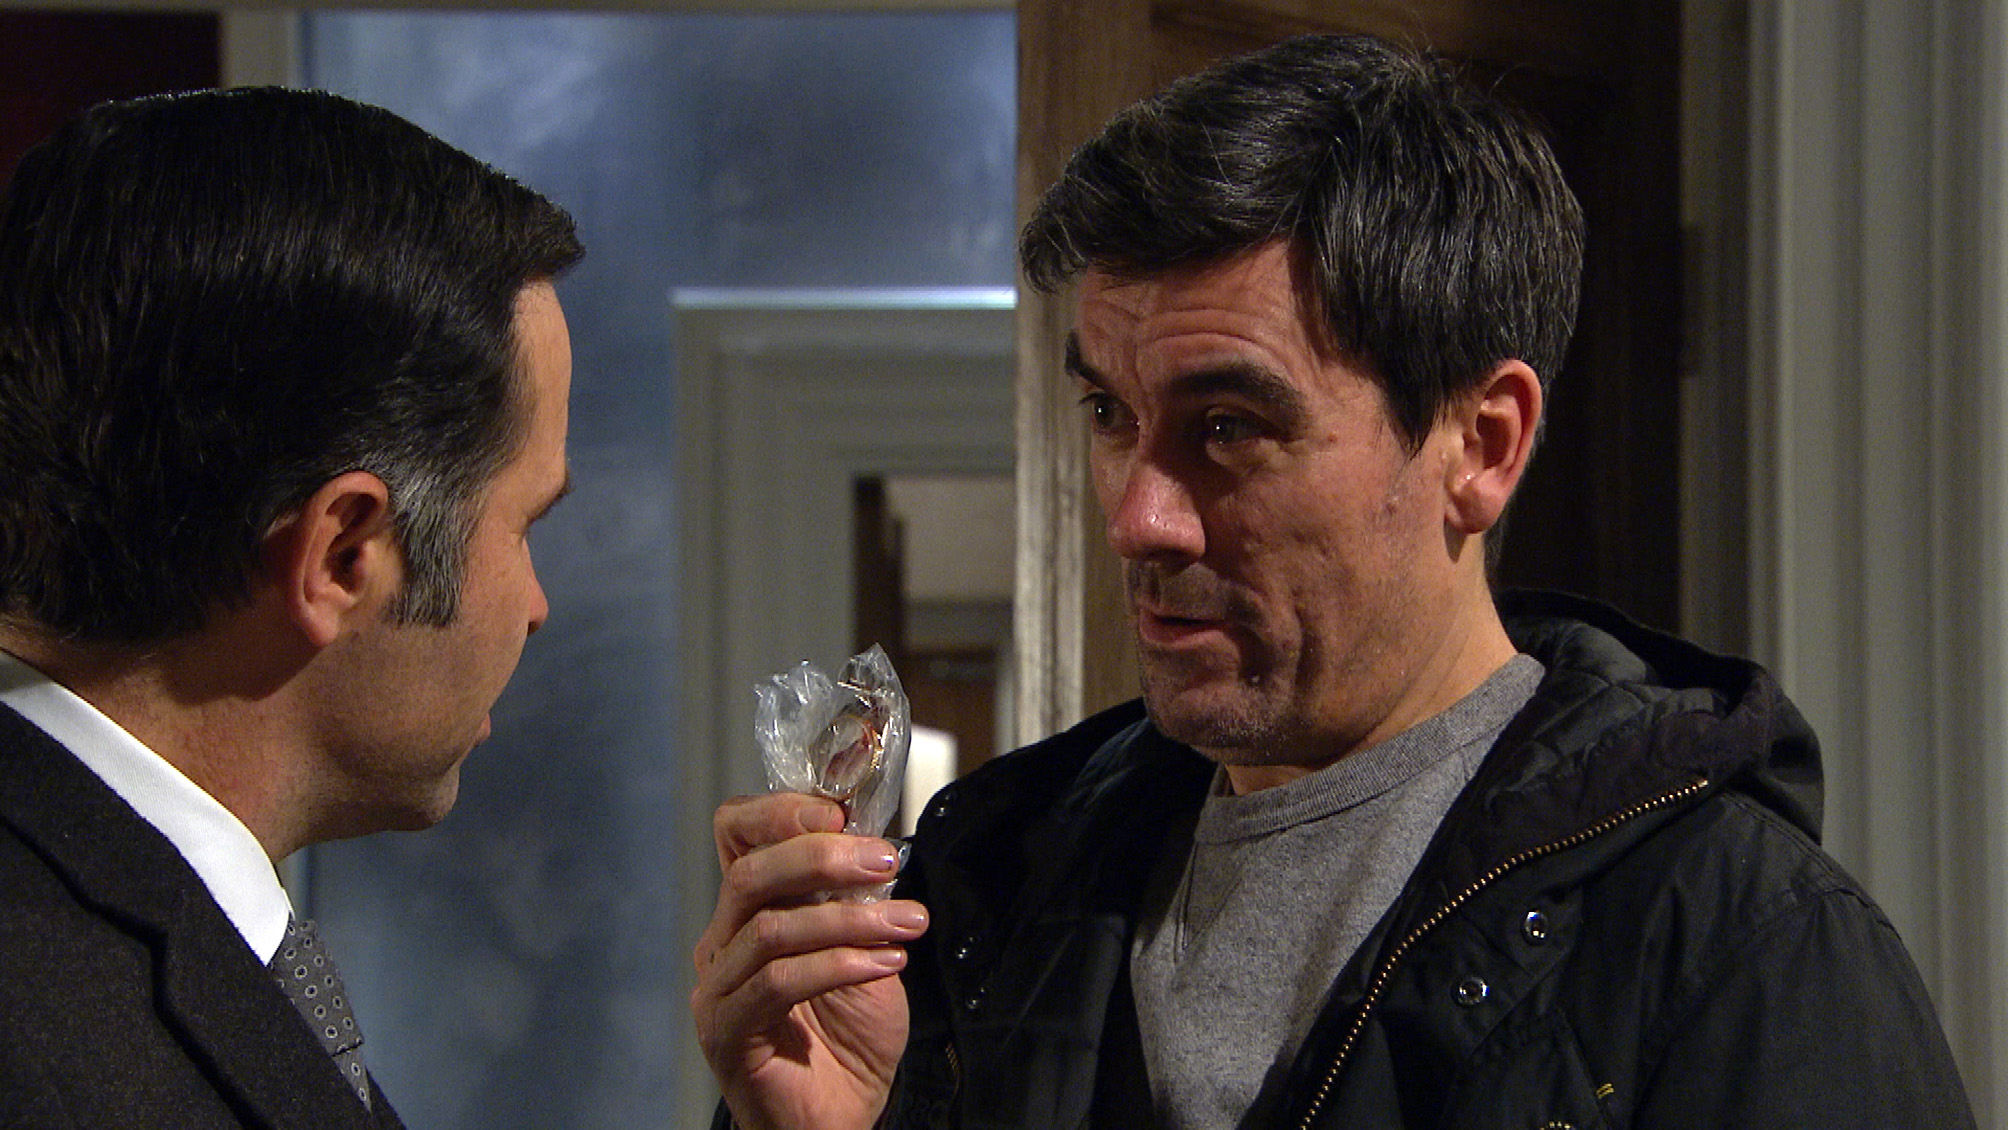 Emmerdale spoilers: Cain Dingle vows to kill Graham Foster over Joe Tate drama